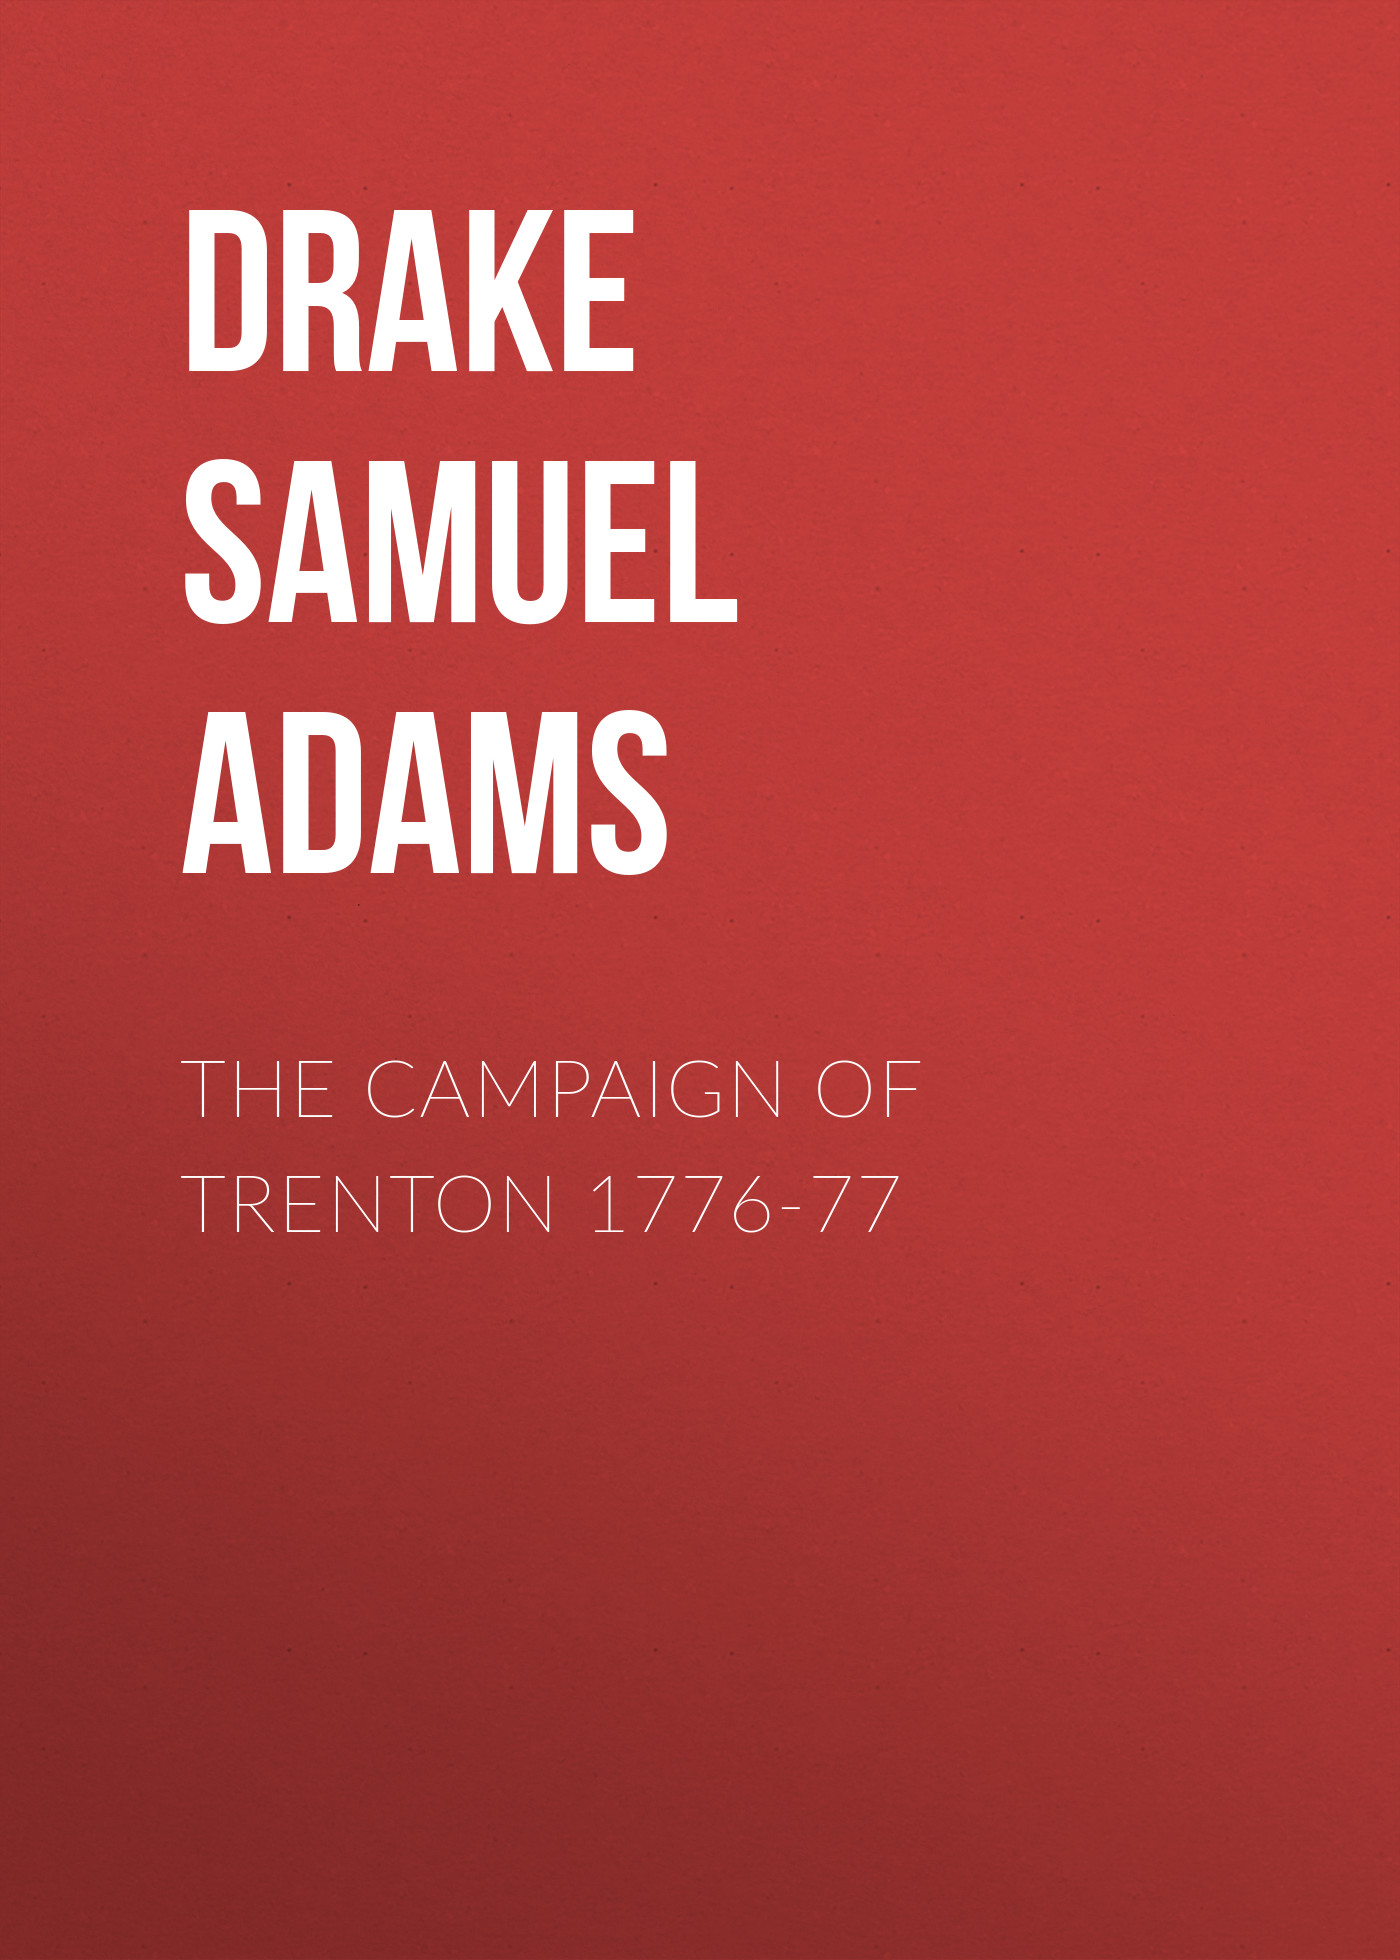 цена на Drake Samuel Adams The Campaign of Trenton 1776-77